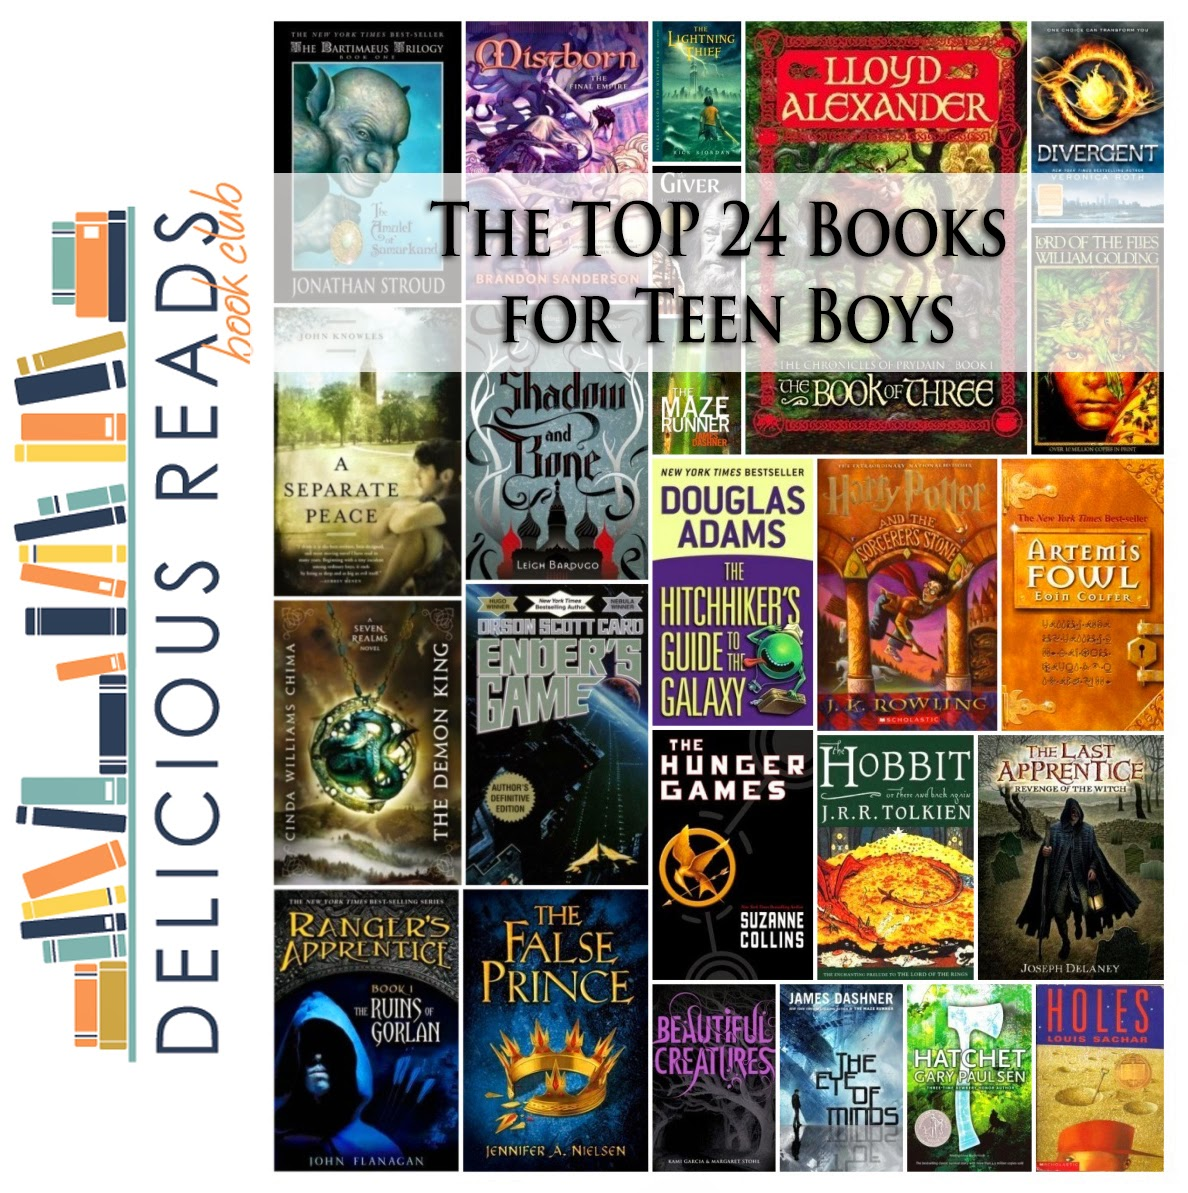 Delicious Reads Our Top 10 Most Popular Posts-6438